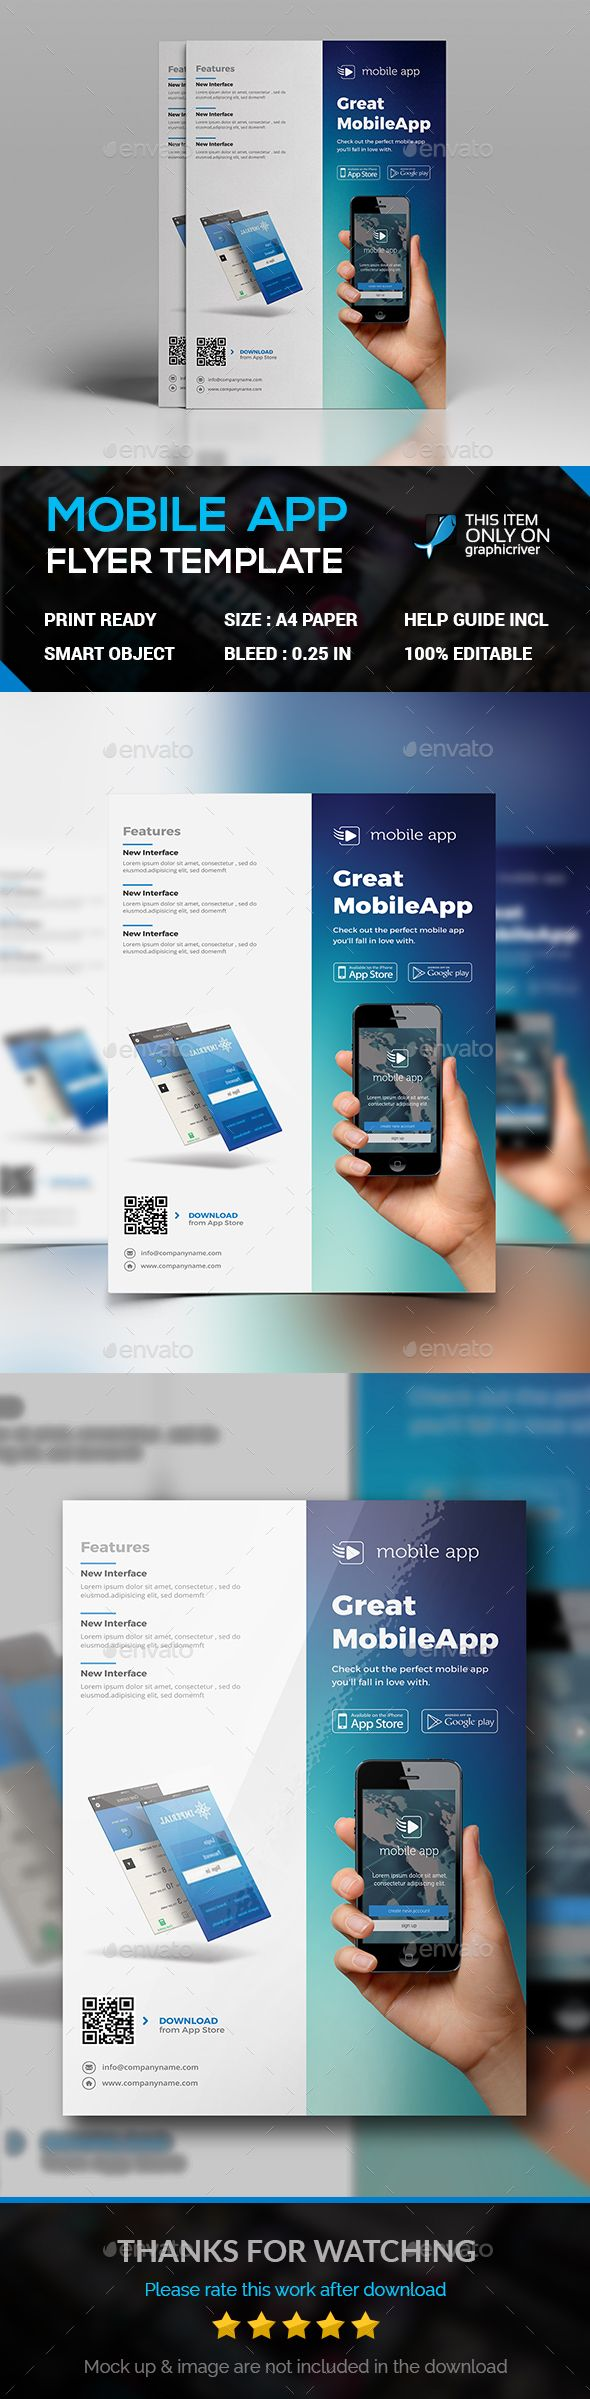 Mobile Apps Flyer — Photoshop PSD #adverts #clean • Available here → https://graphicriver.net/item/mobile-apps-flyer/17711502?ref=pxcr